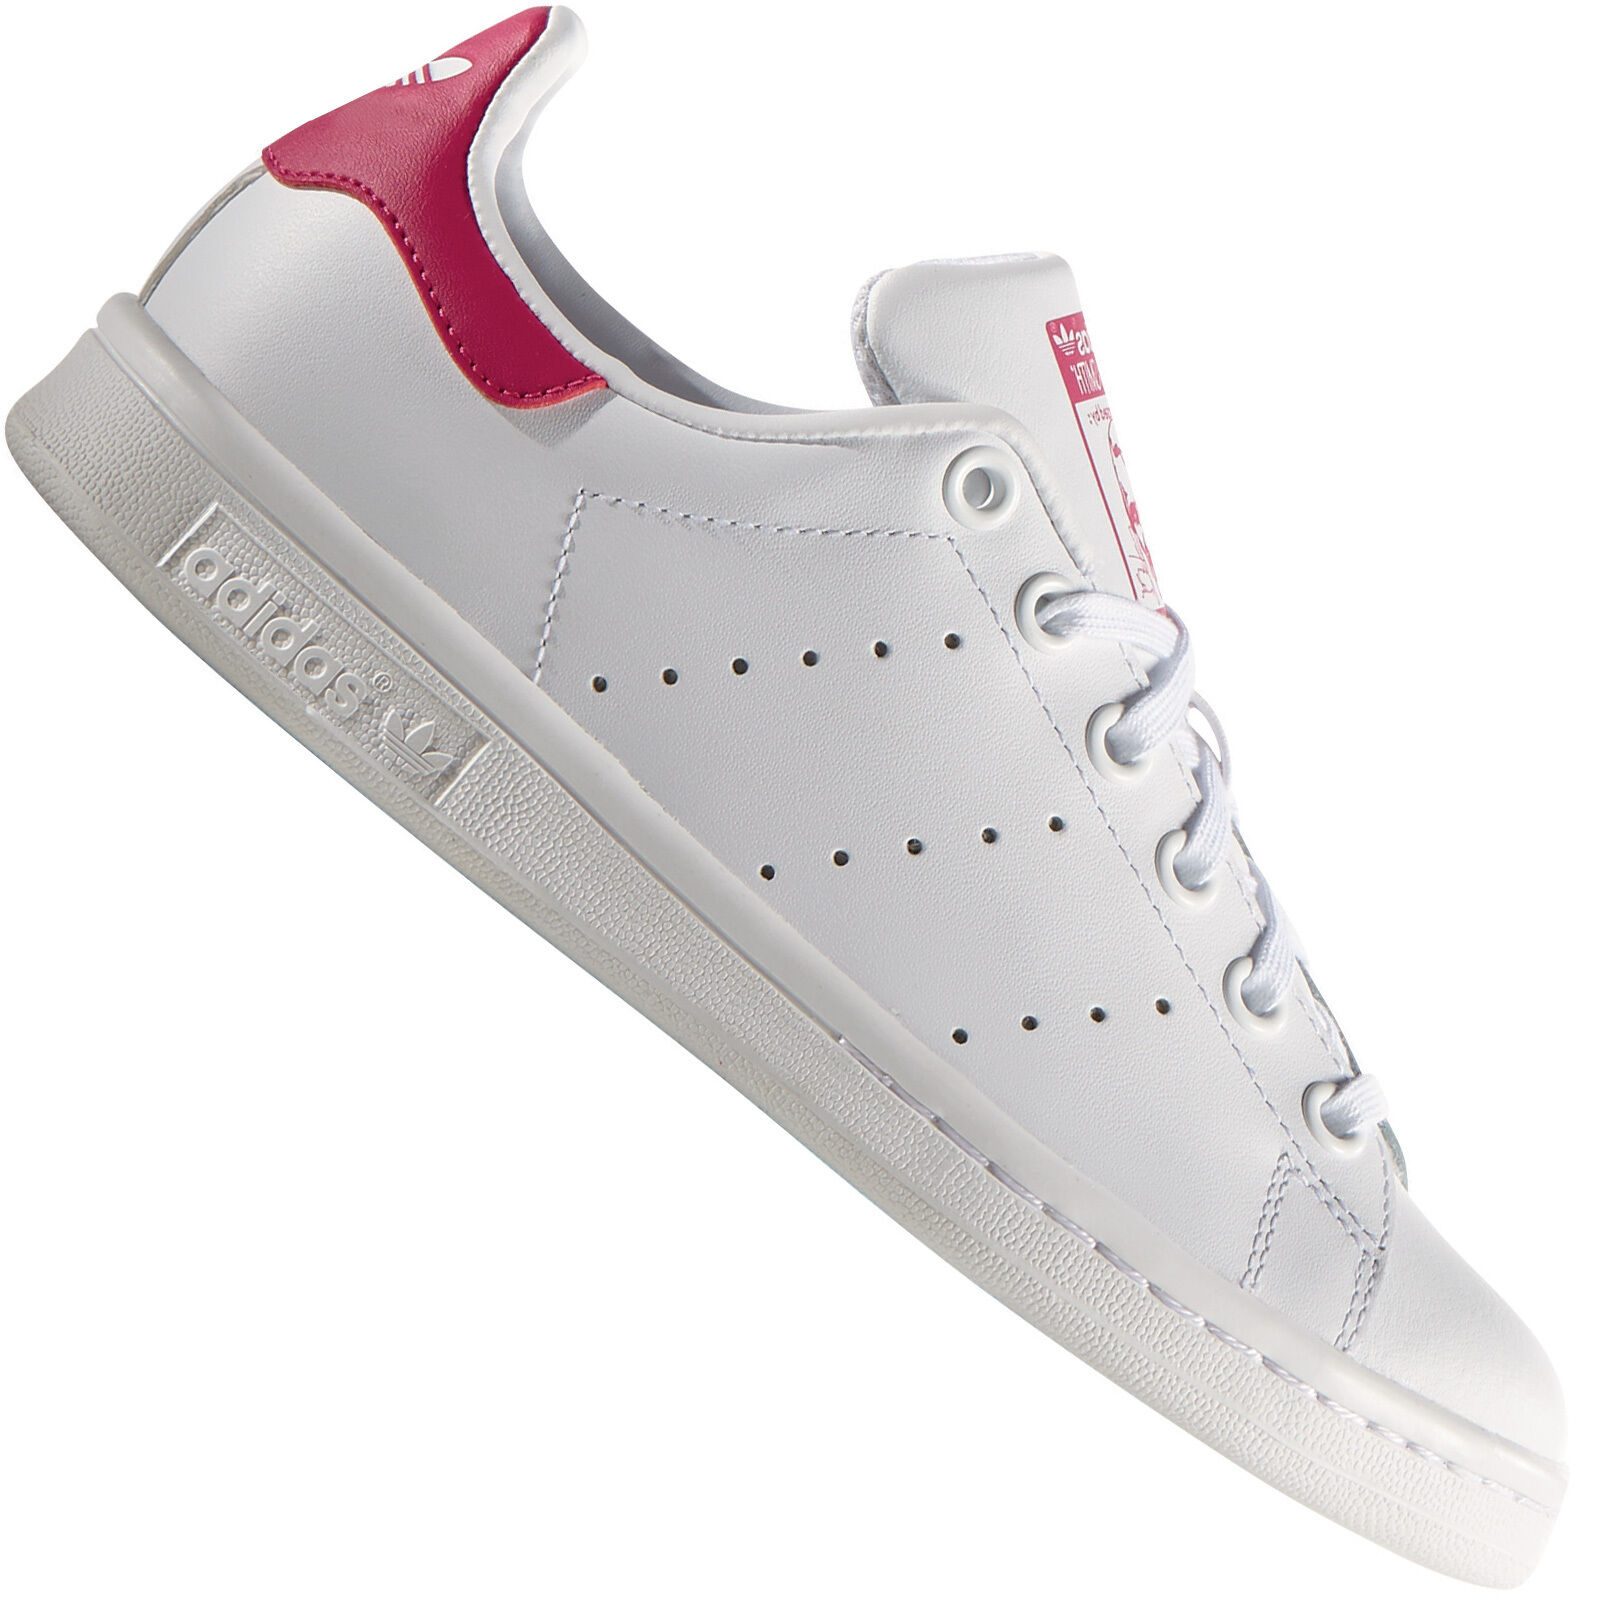 Adidas Originals Stan Smith Y Women's Sneakers B32703 White Pink Sneakers shoes